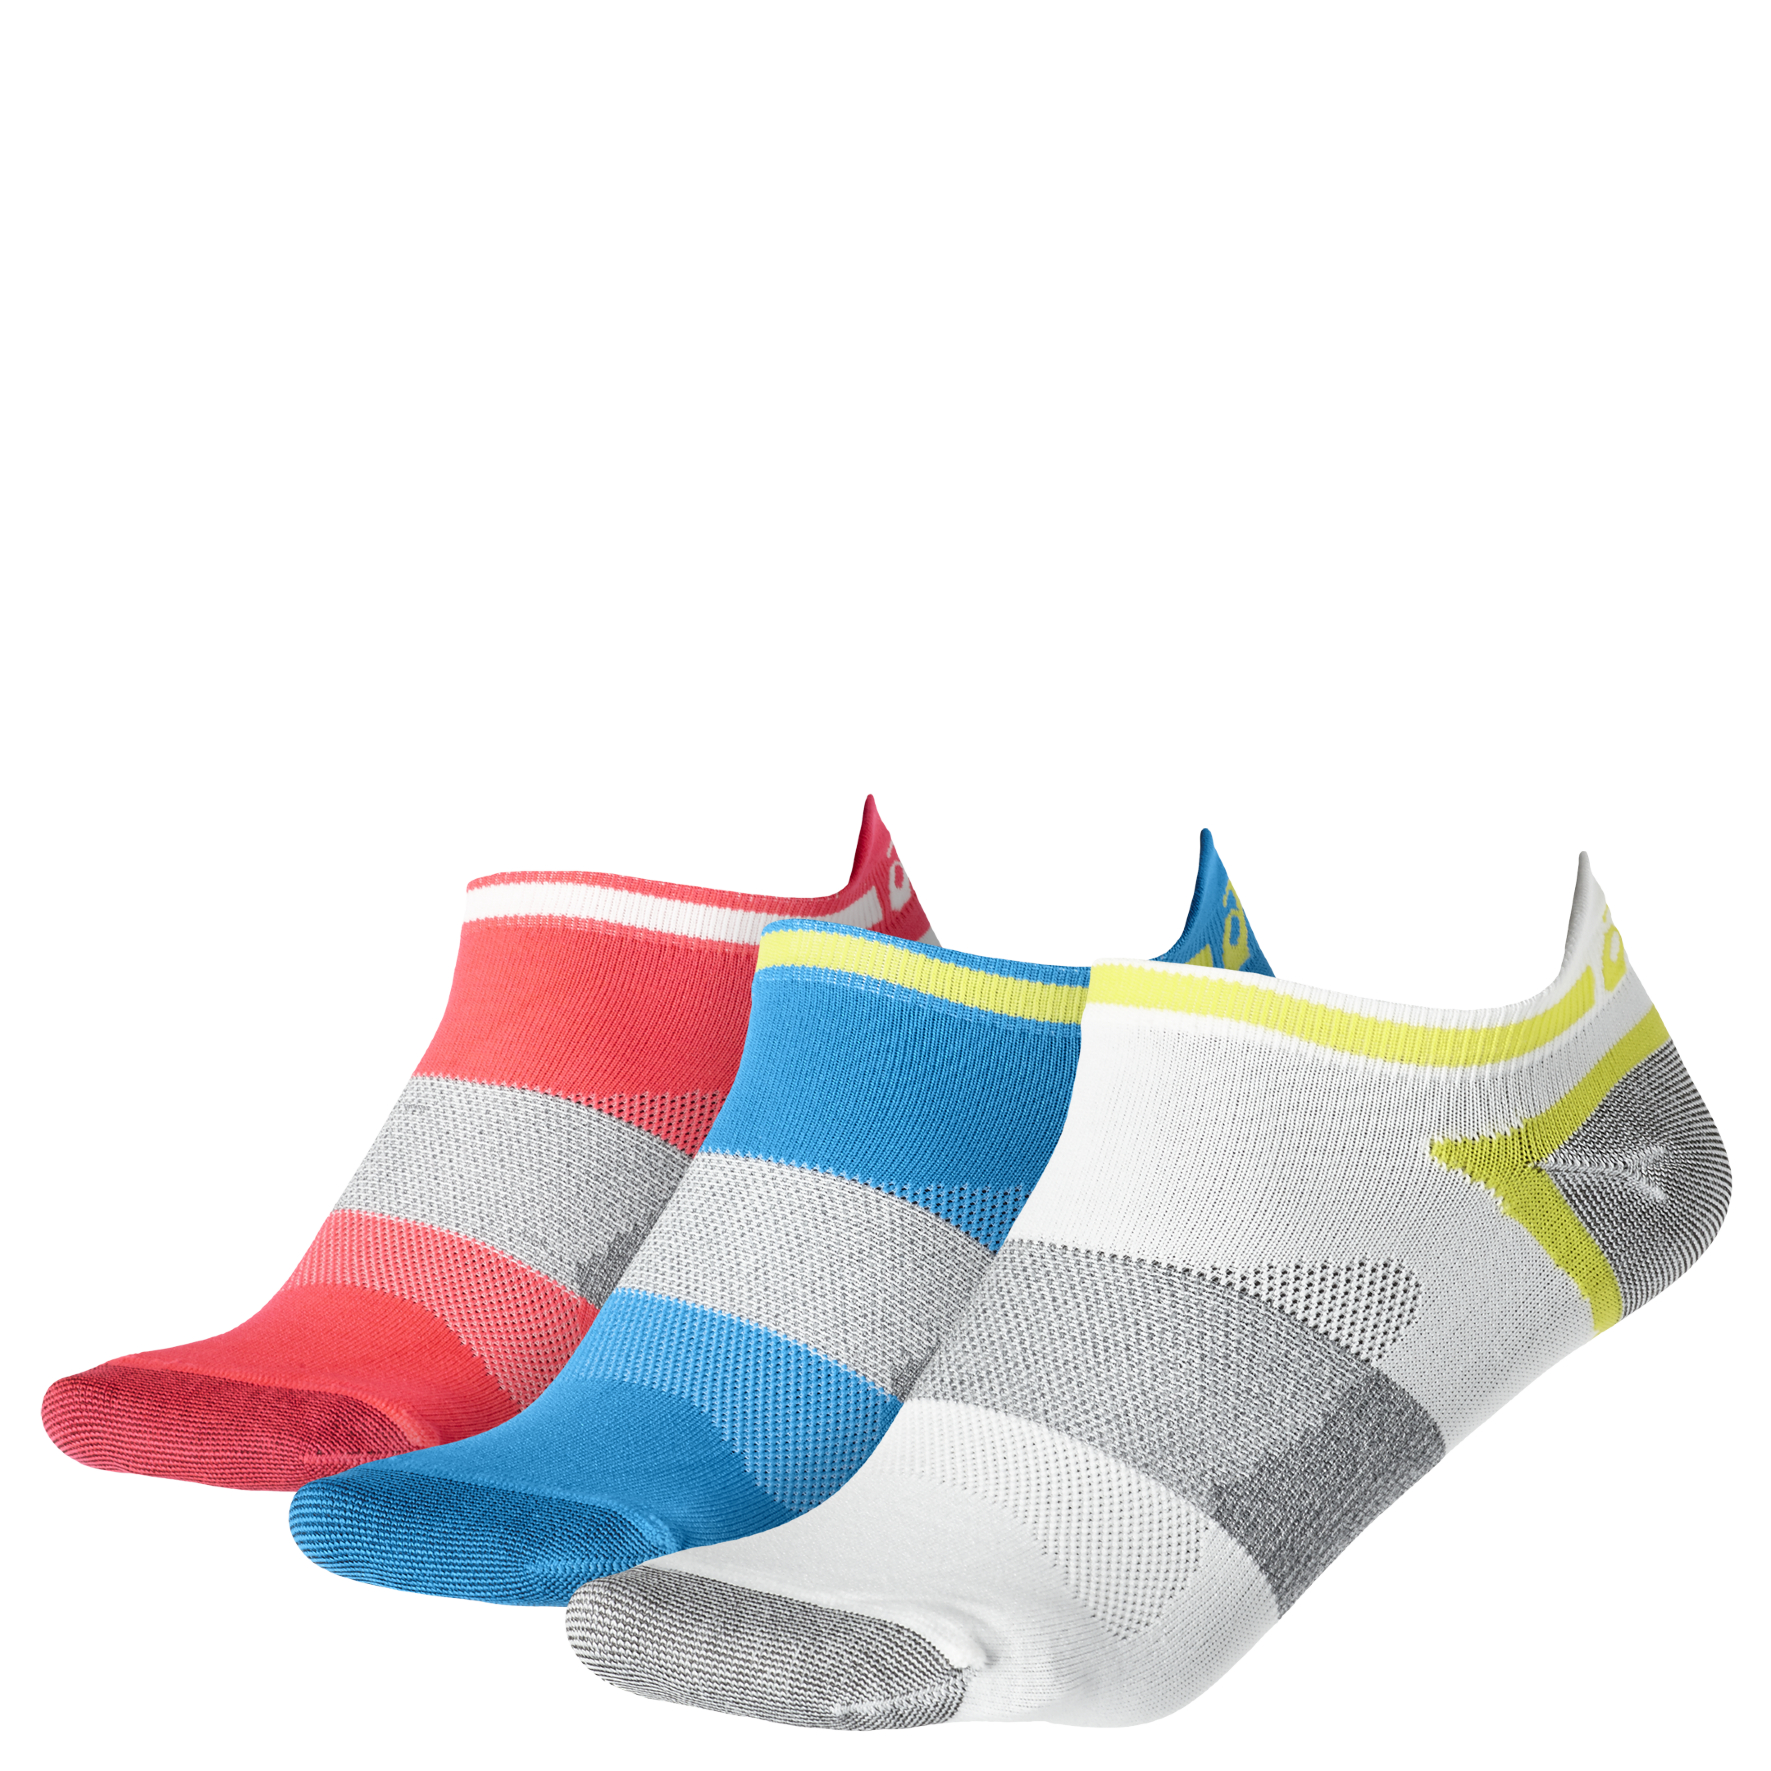 Available from 10.11 ASICS sock slippers girls 123458-8012 asics marathon racer sock